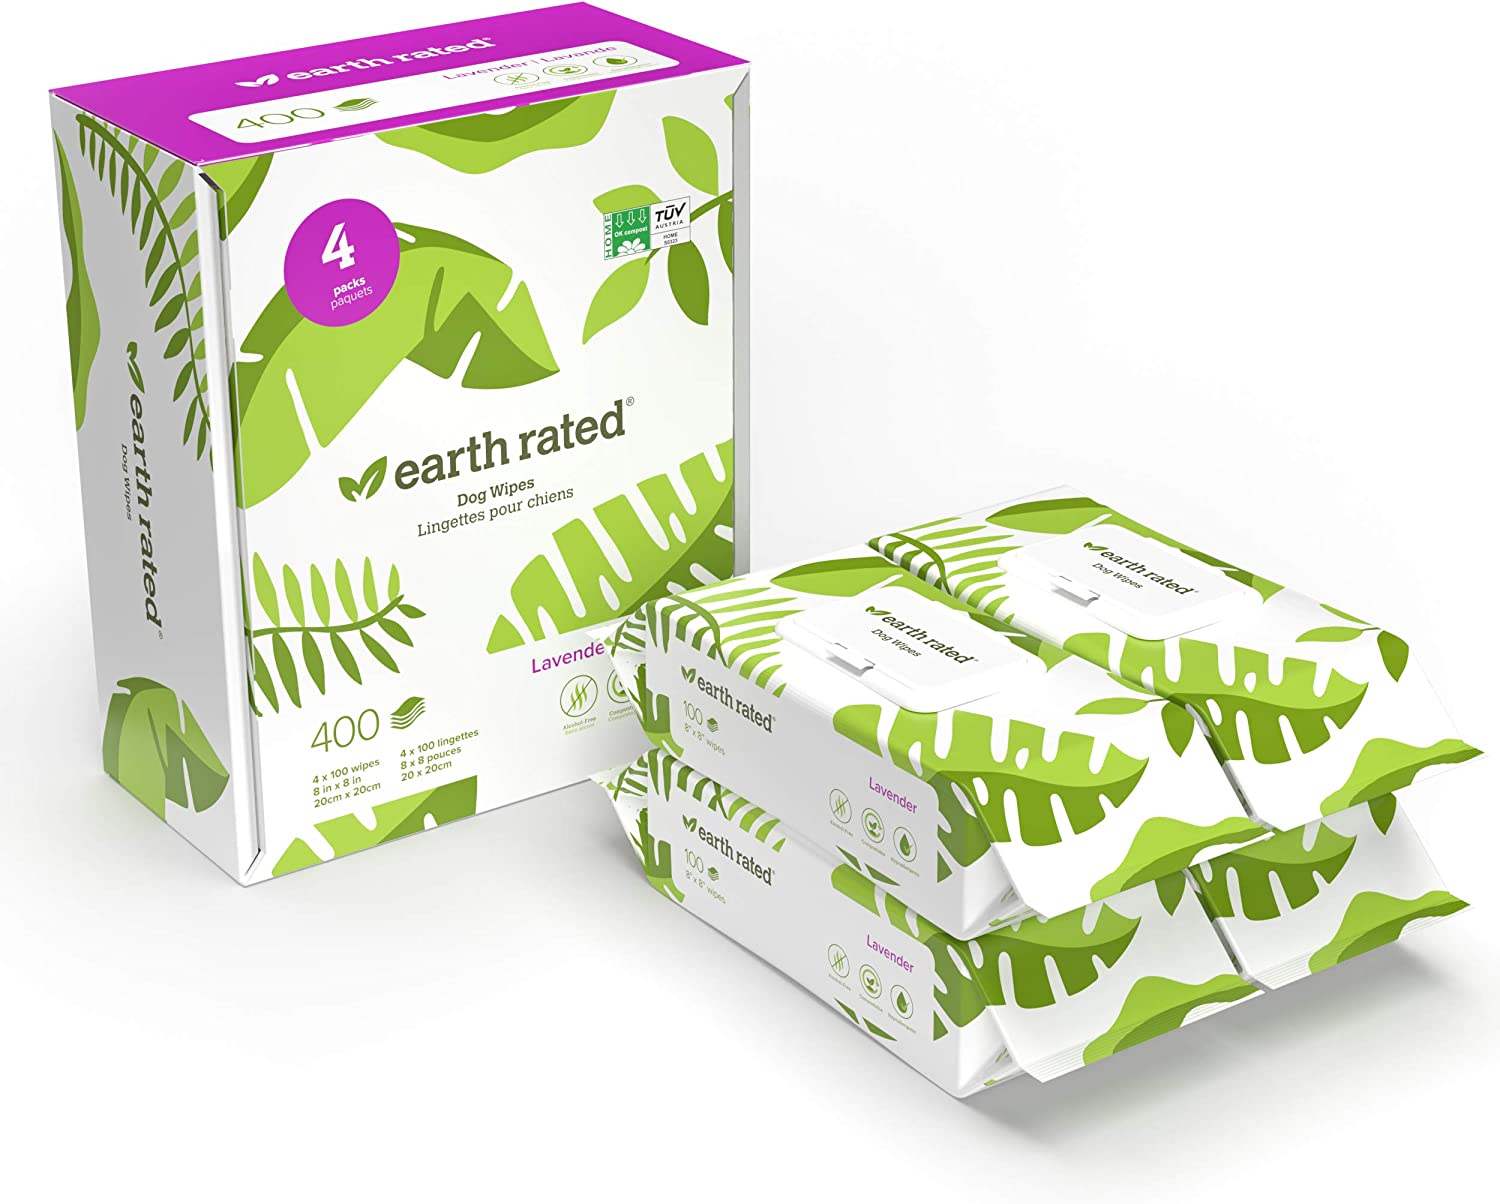 Earth Rated Dog Wipes, Plant-Based and Compostable Wipes for Dogs & Cats, USDA-Certified 99 Percent Biobased, Hypoallergenic, 8x8 Deodorizing Grooming Pet Wipes for Paws, Body and Butt